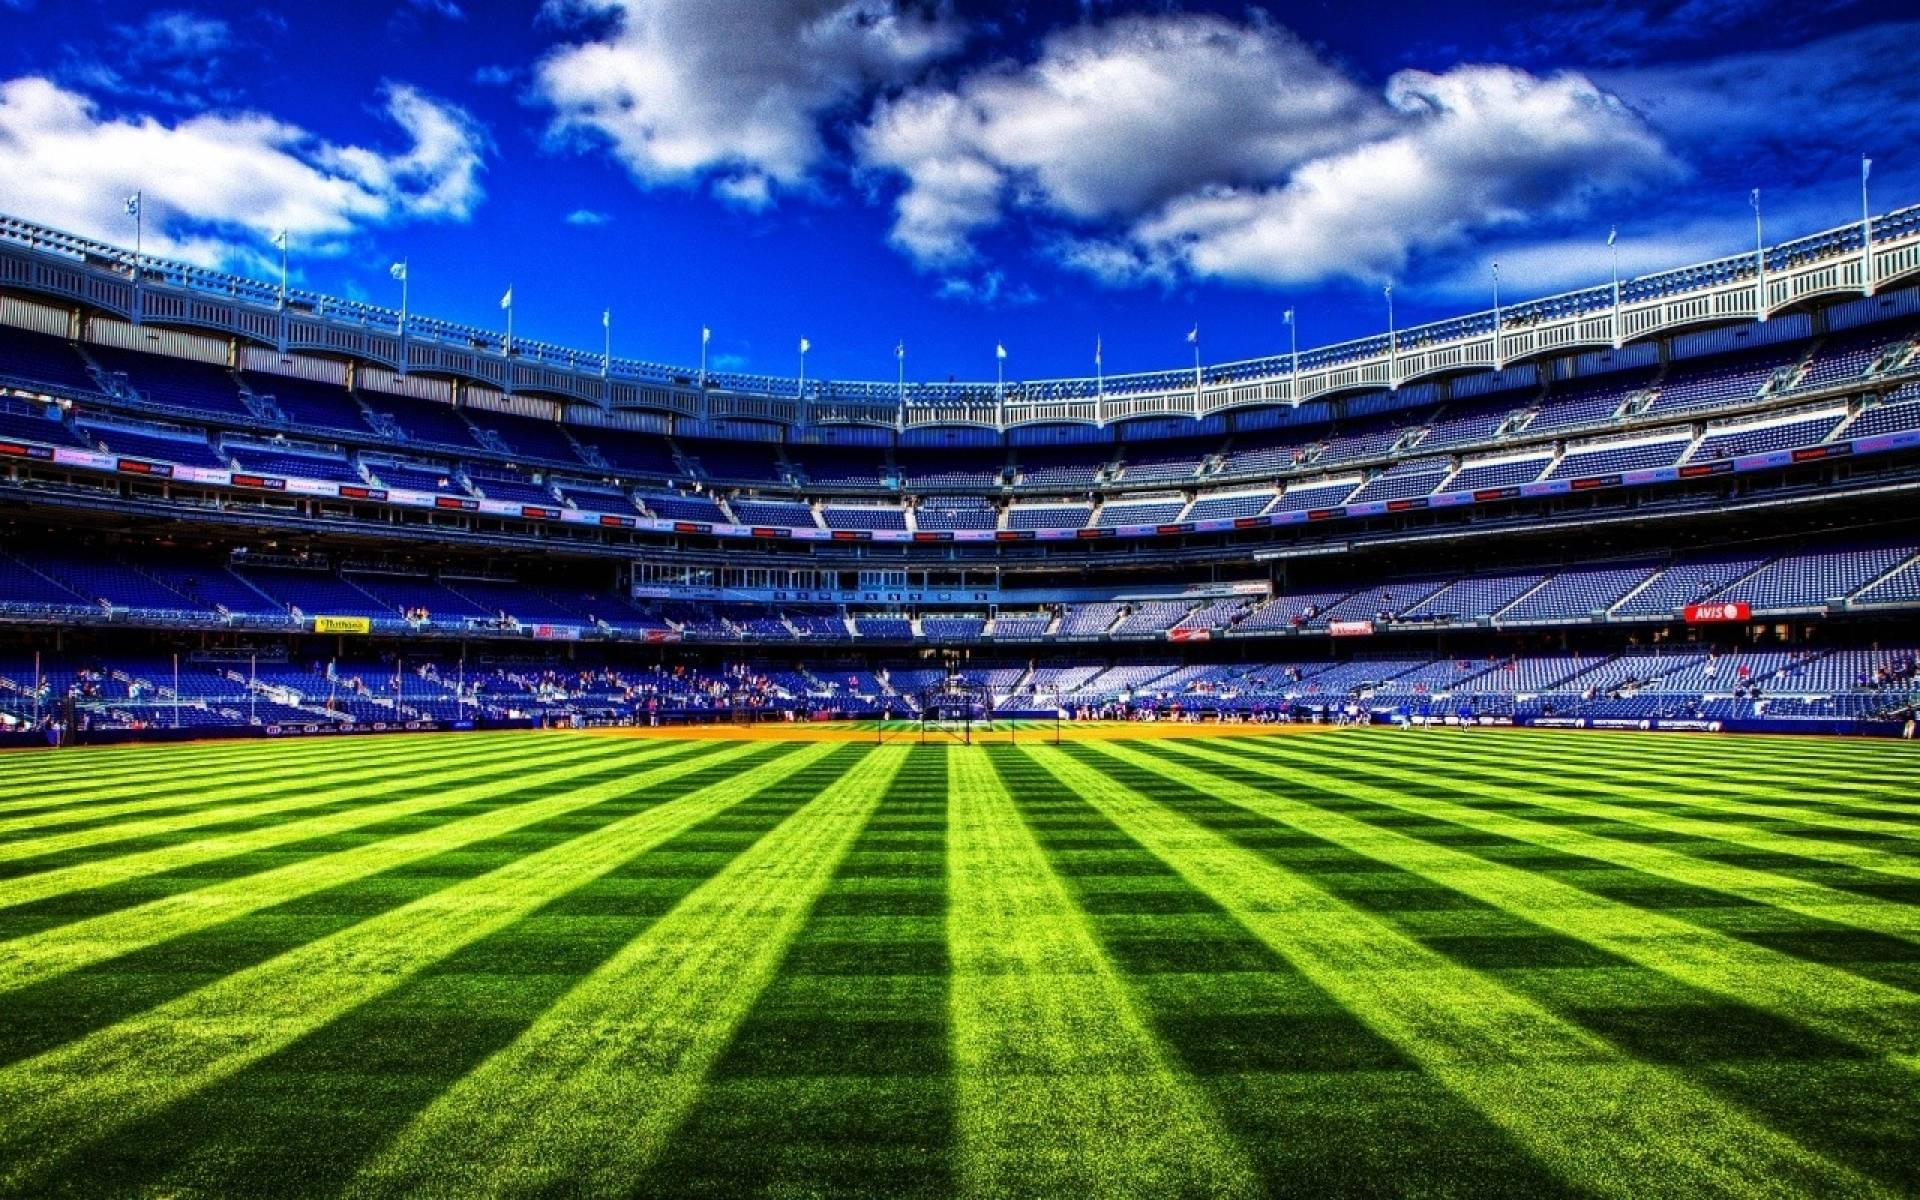 Baseball Stadium Wallpapers 1920x1200